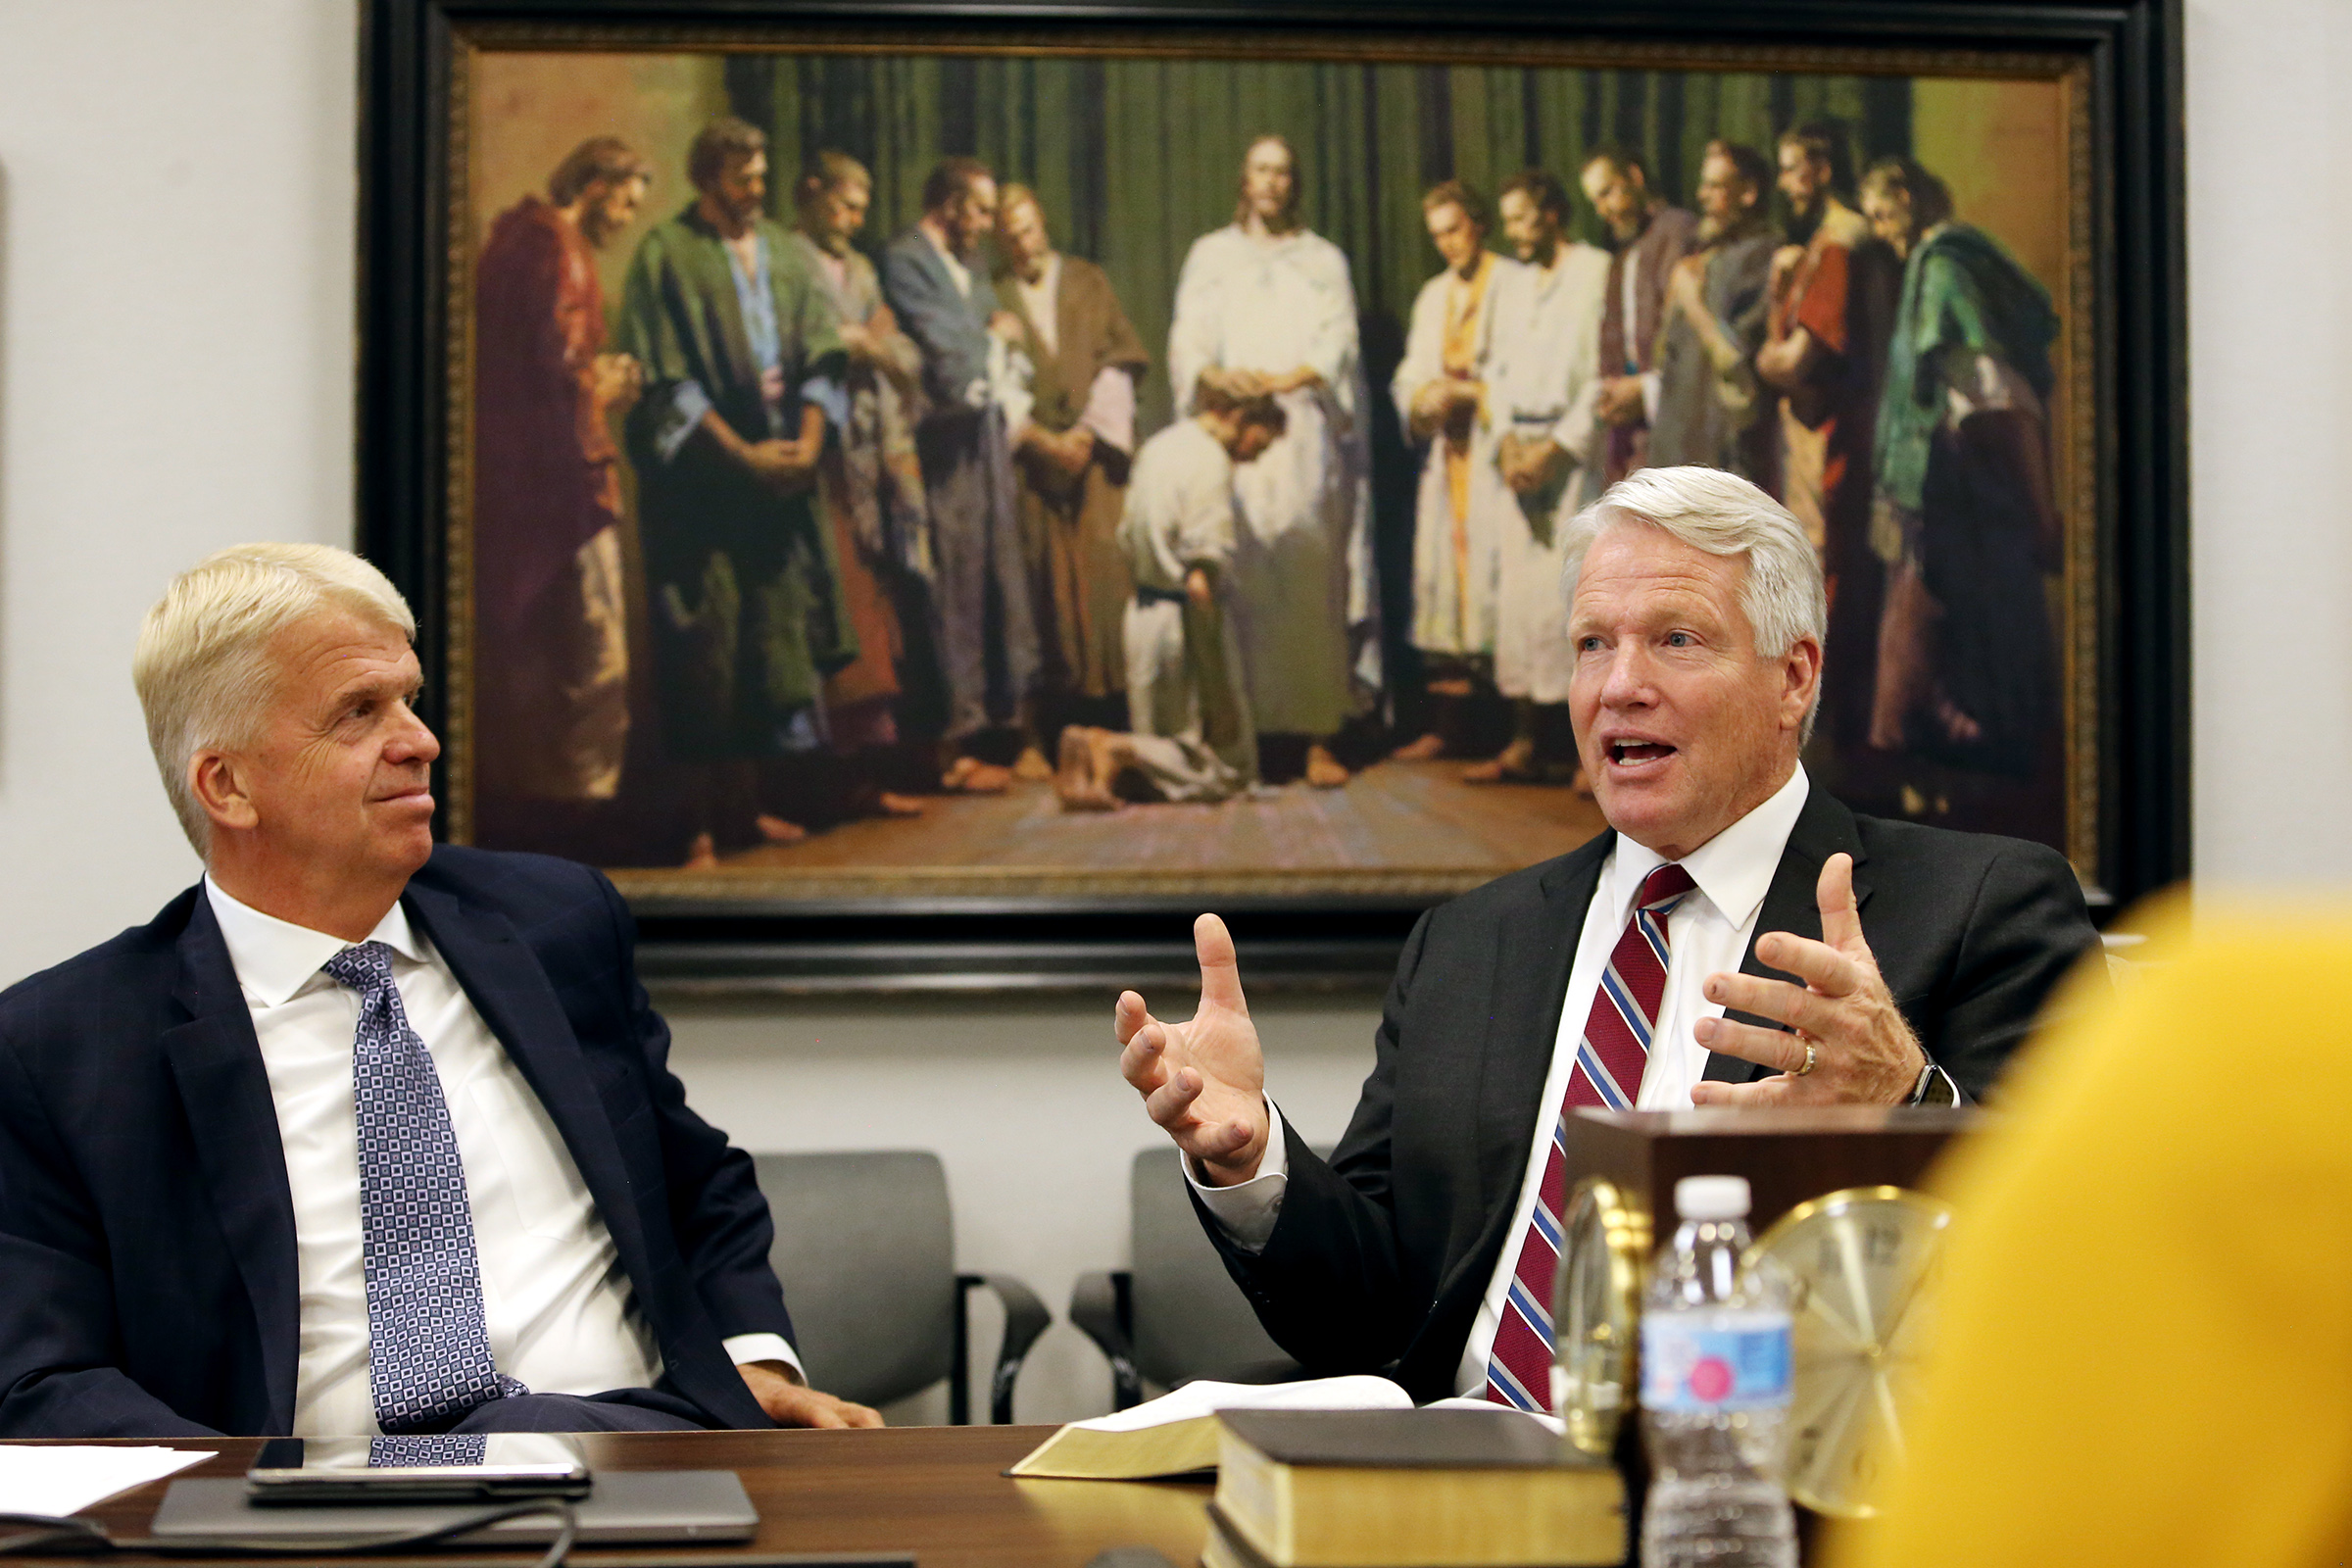 Brother Stephen W. Owen makes a comment as he and Brother Douglas D. Holmes, left, participate in a discussion between the Young Men and Young Women general presidencies on the 2020 youth theme Tuesday, Aug. 20, 2019, at the Church Office Building in Salt Lake City.